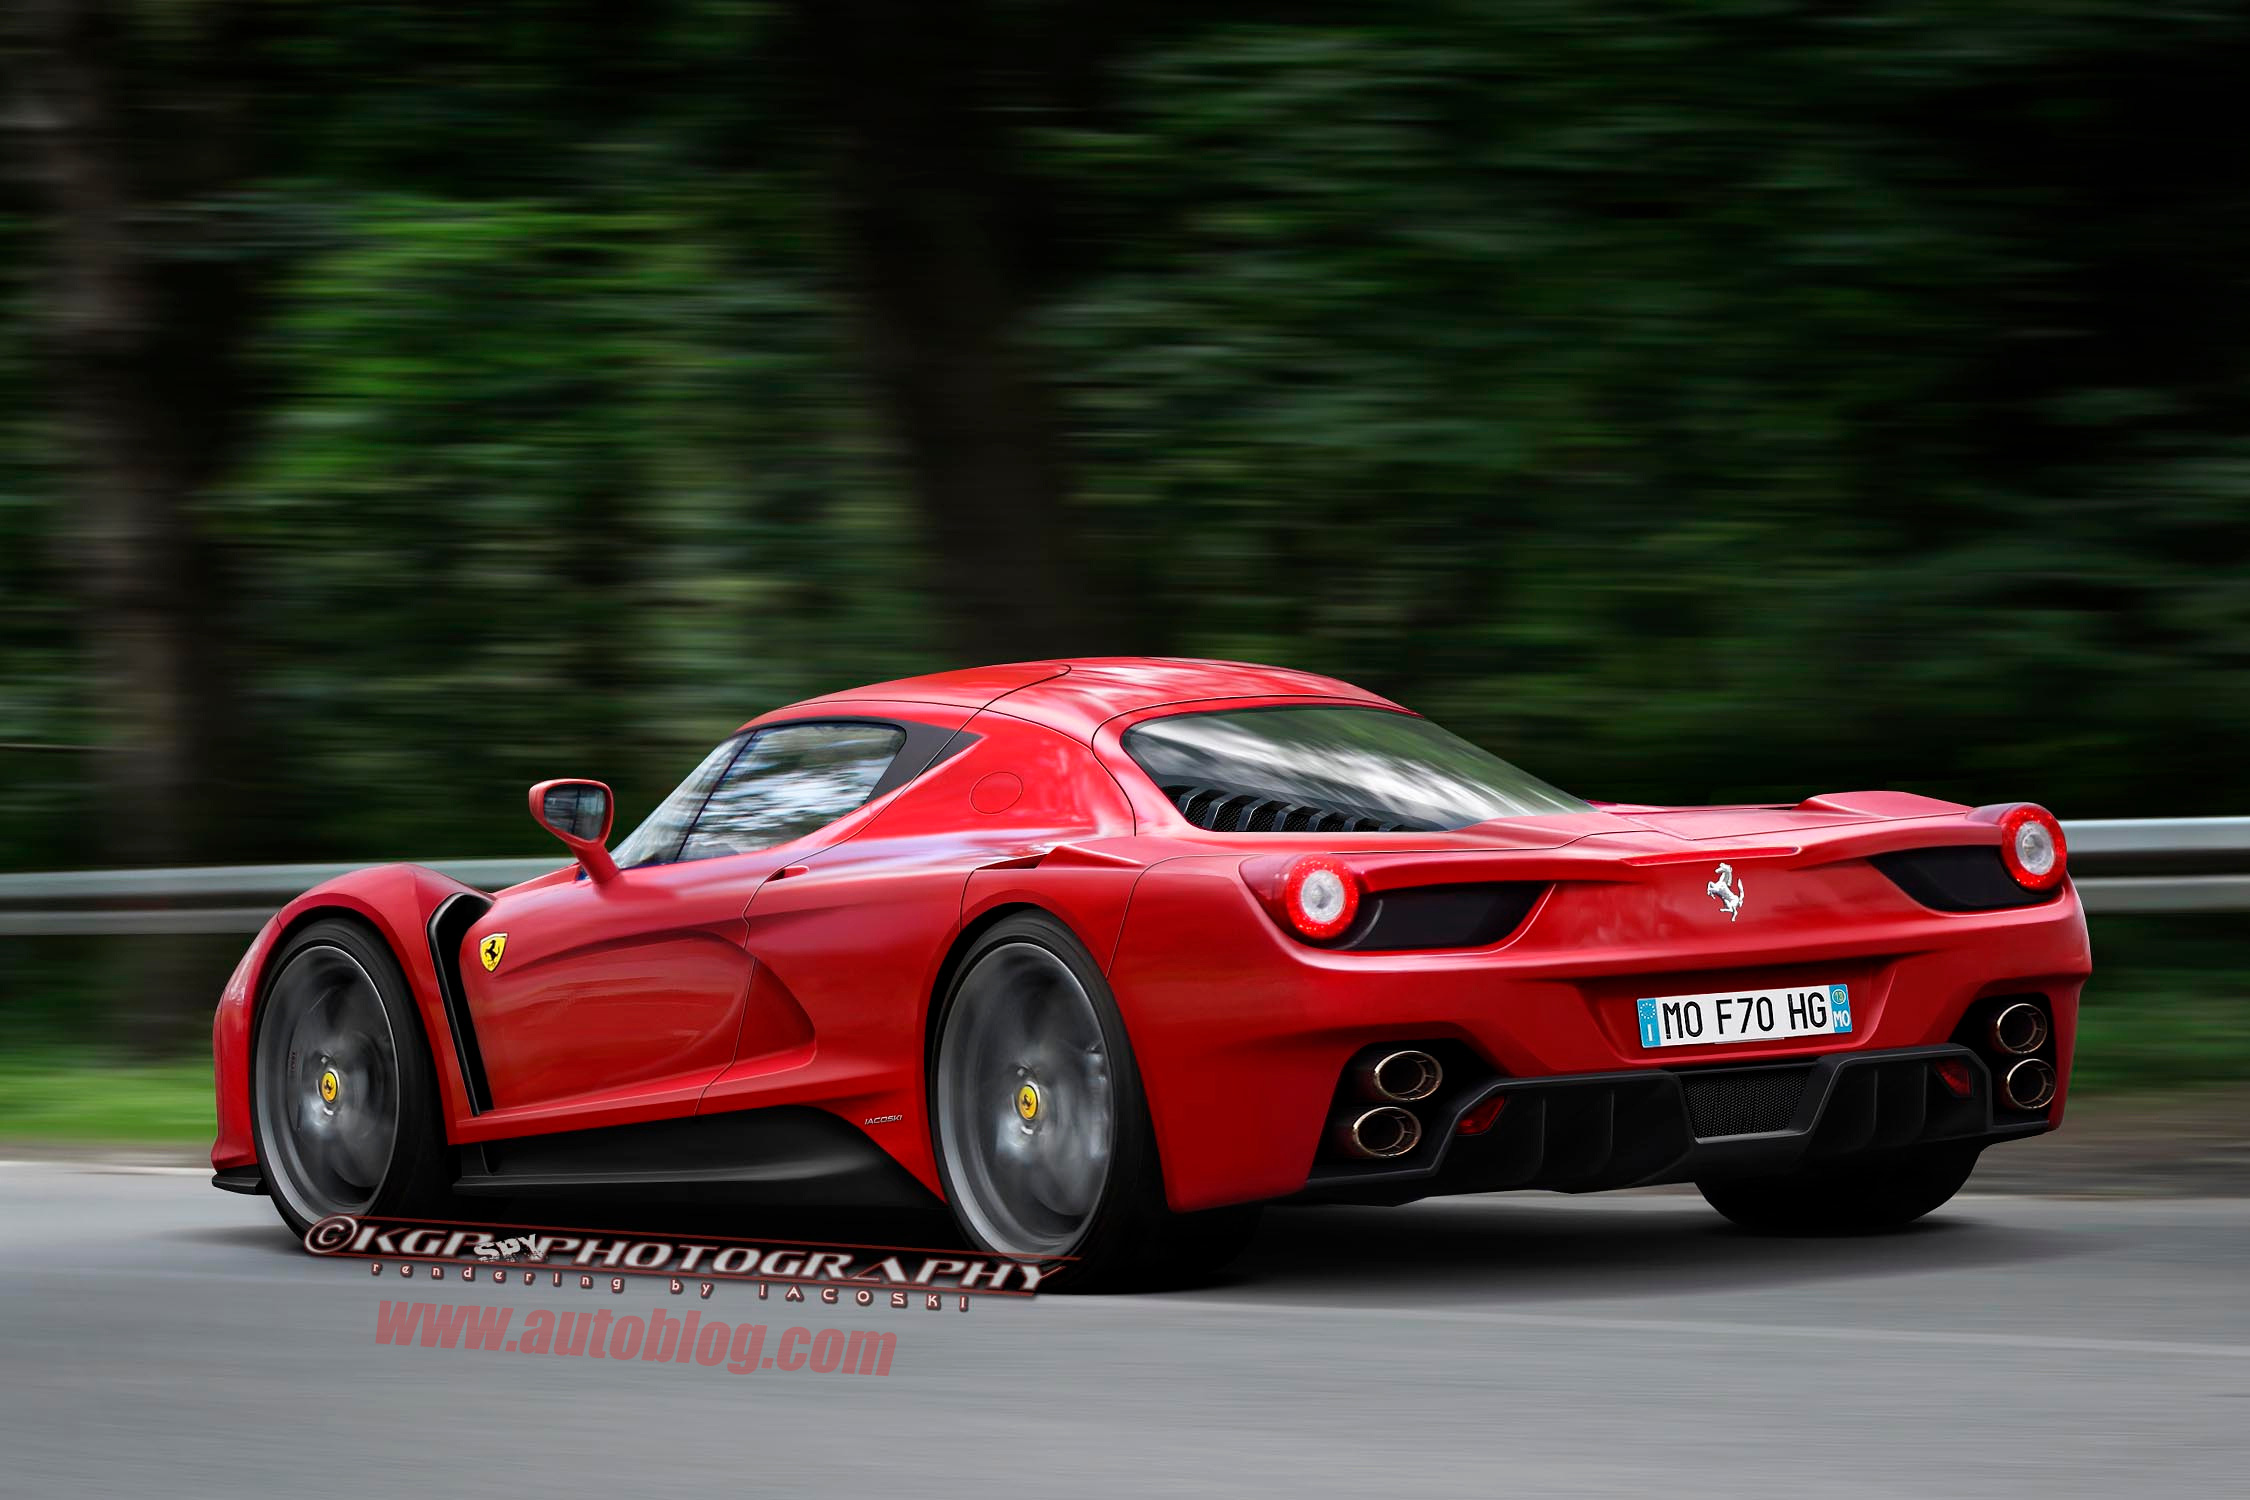 Ferrari F70 Rendering World Cars Wallpapers Download